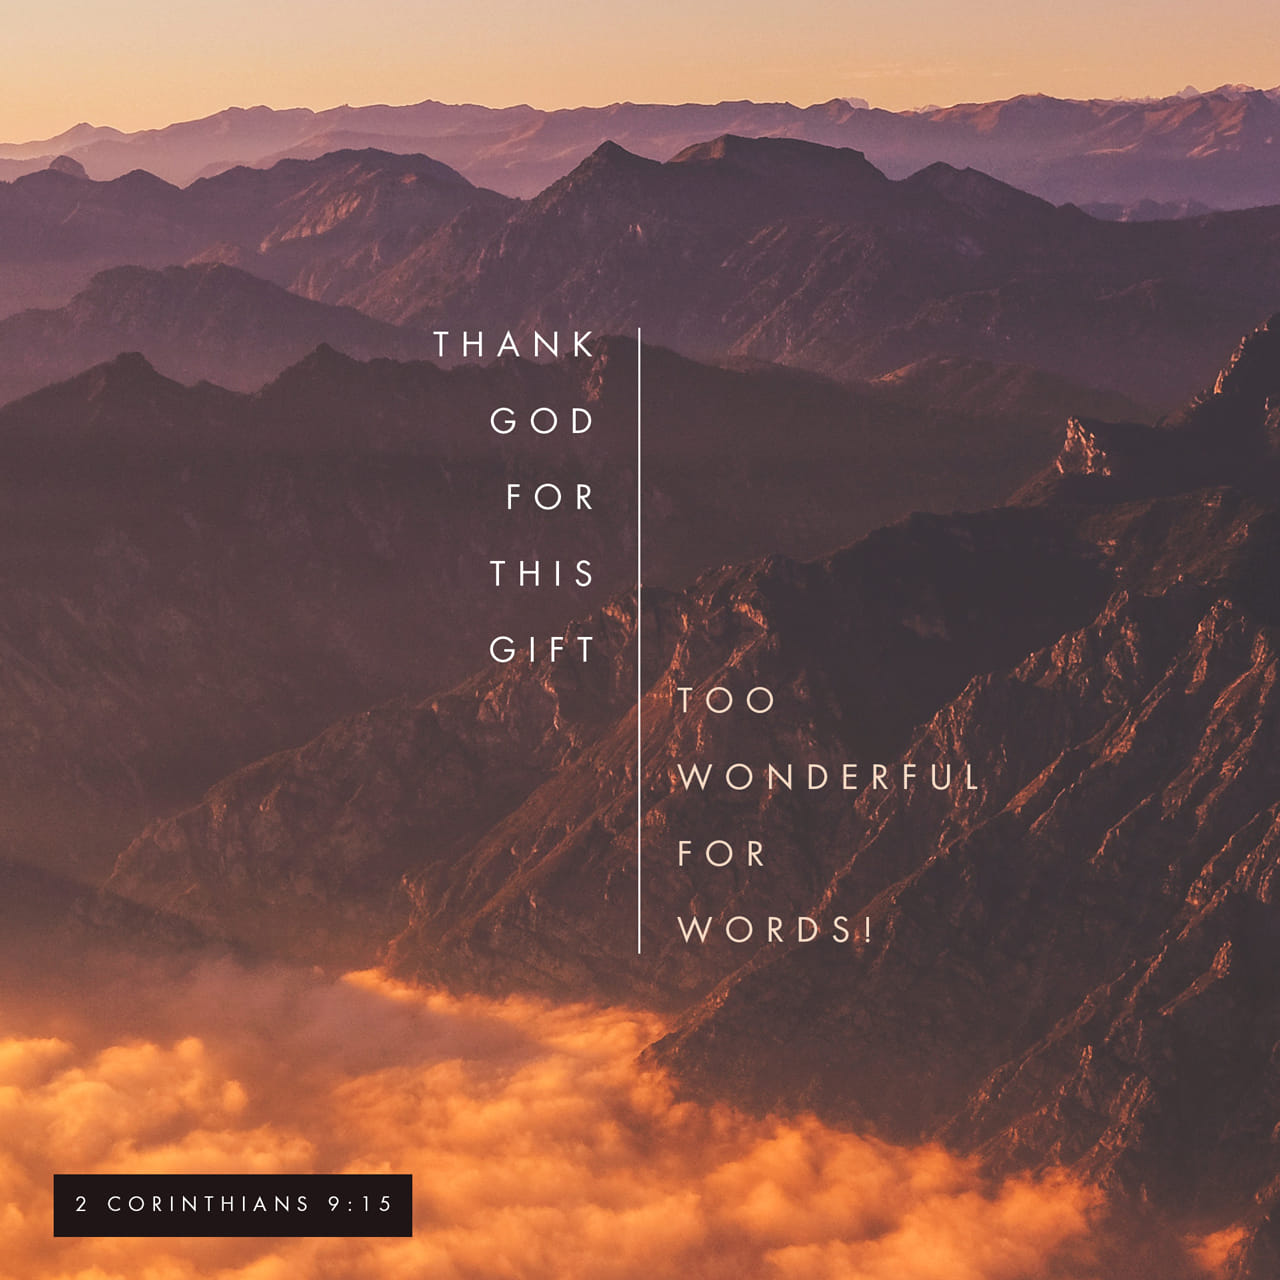 2 Corinthians 9:15 Thanks be to God for his indescribable gift! | New International Version (NIV)